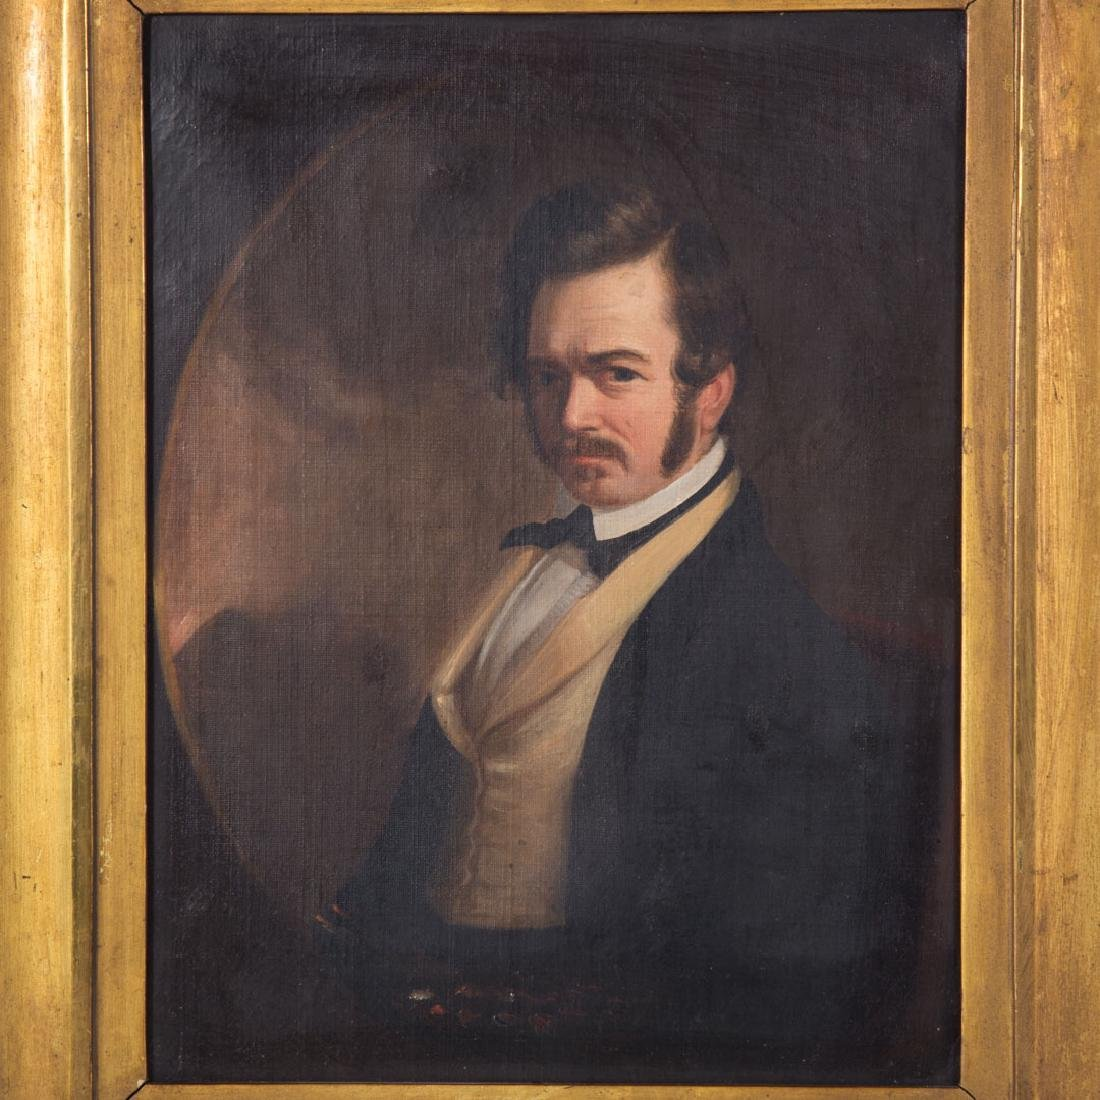 Attr. to William Hepburn. Self Portrait, oil - 2